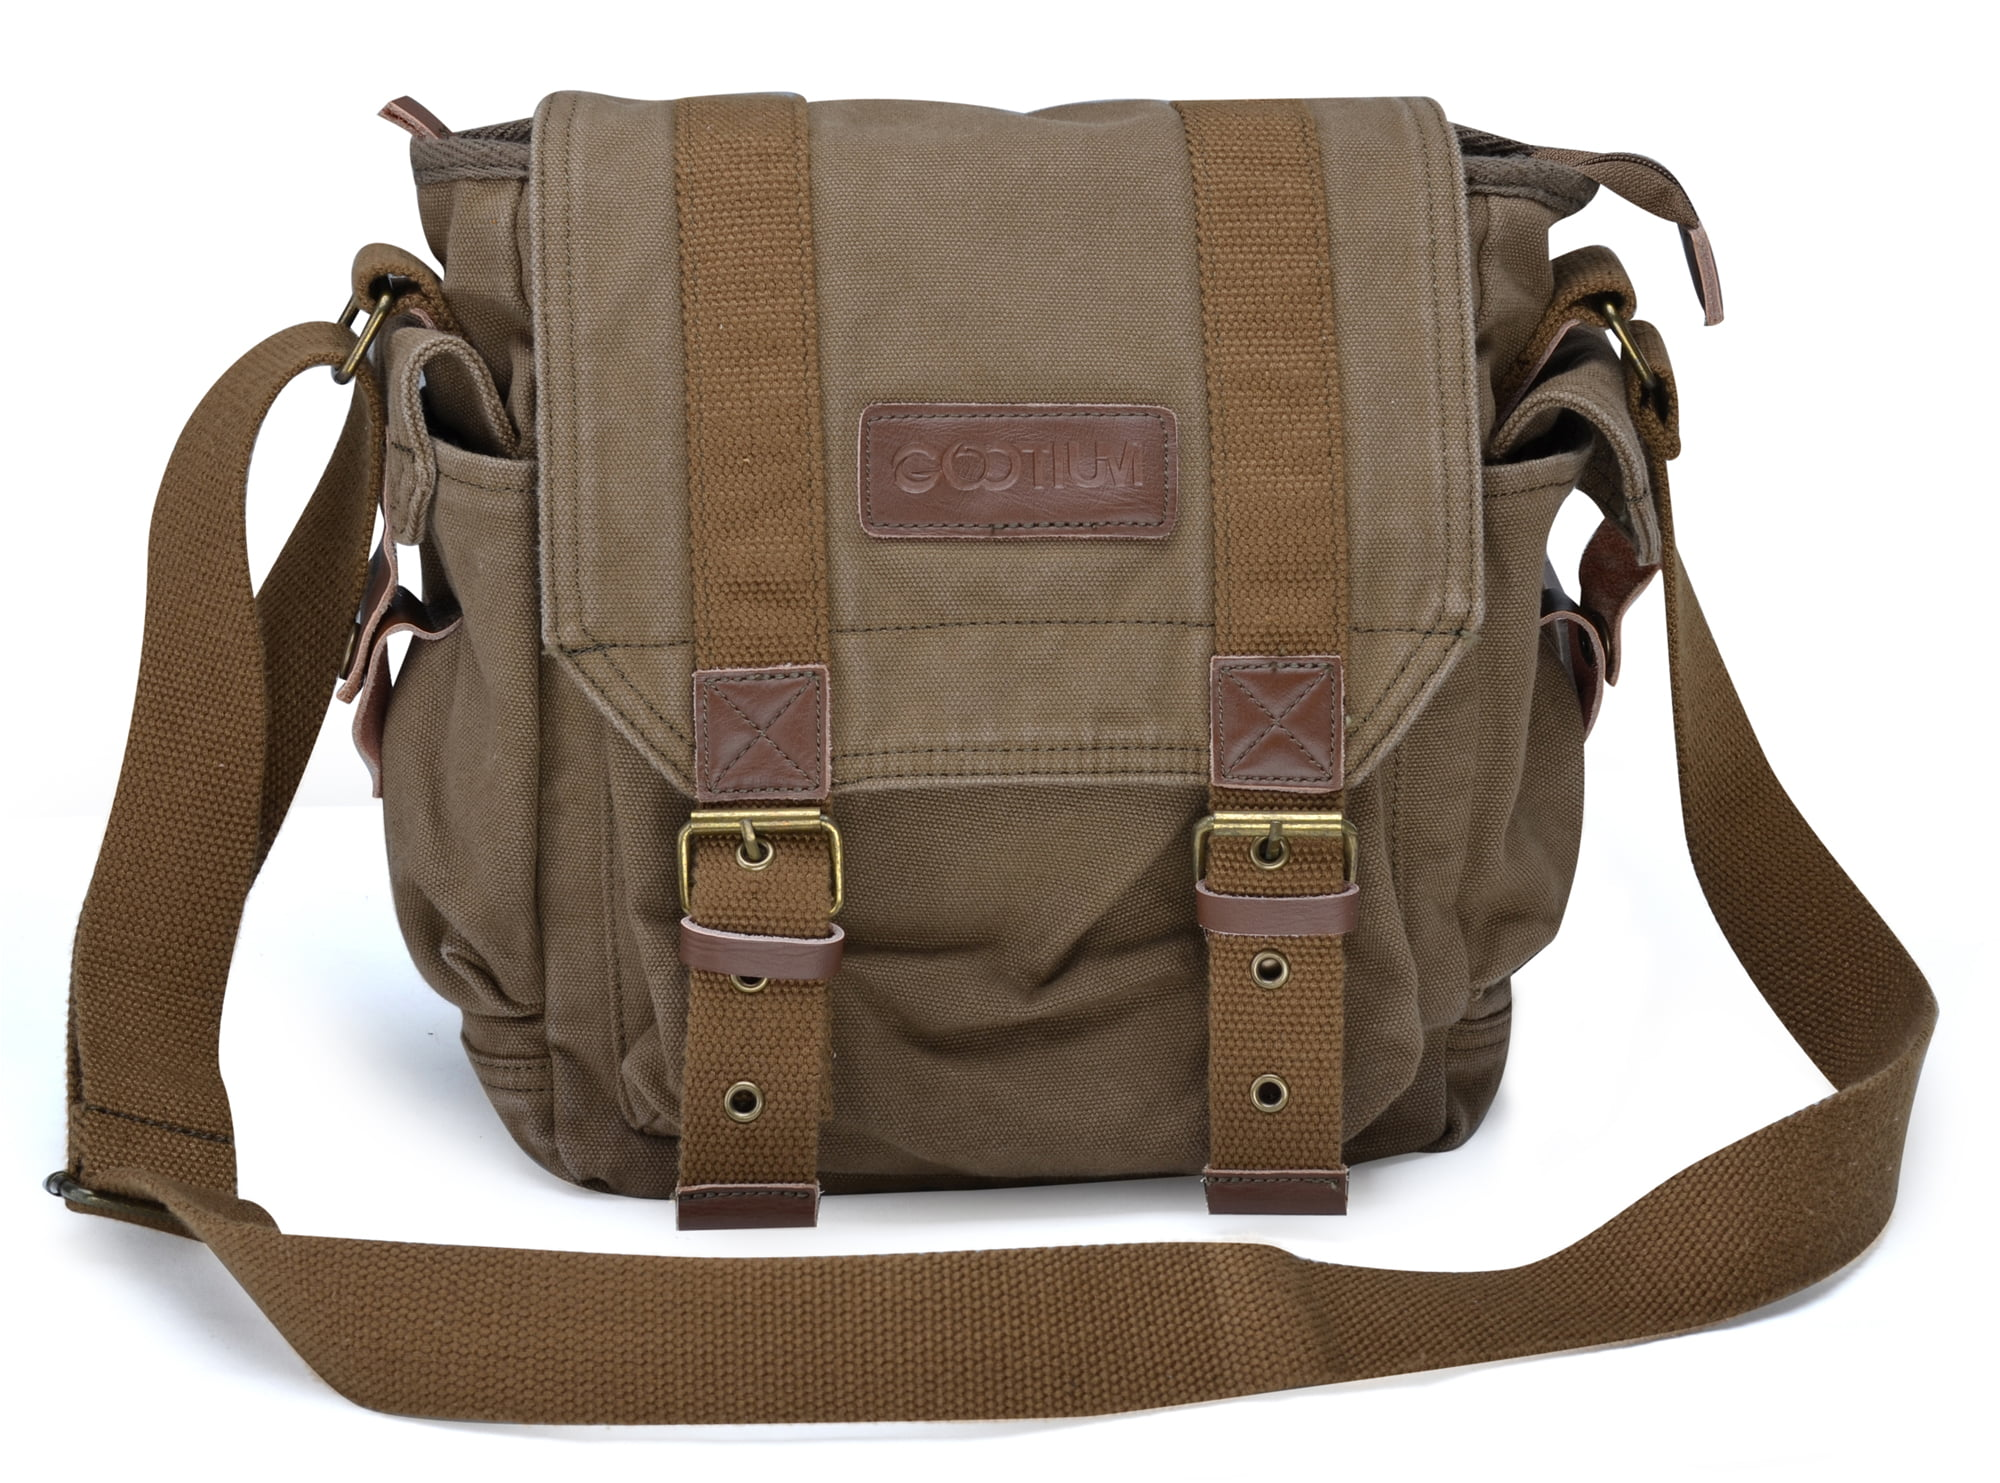 3b37bd175e Gootium Vintage Canvas Messenger Bag Men s Shoulder Bag School Satchel